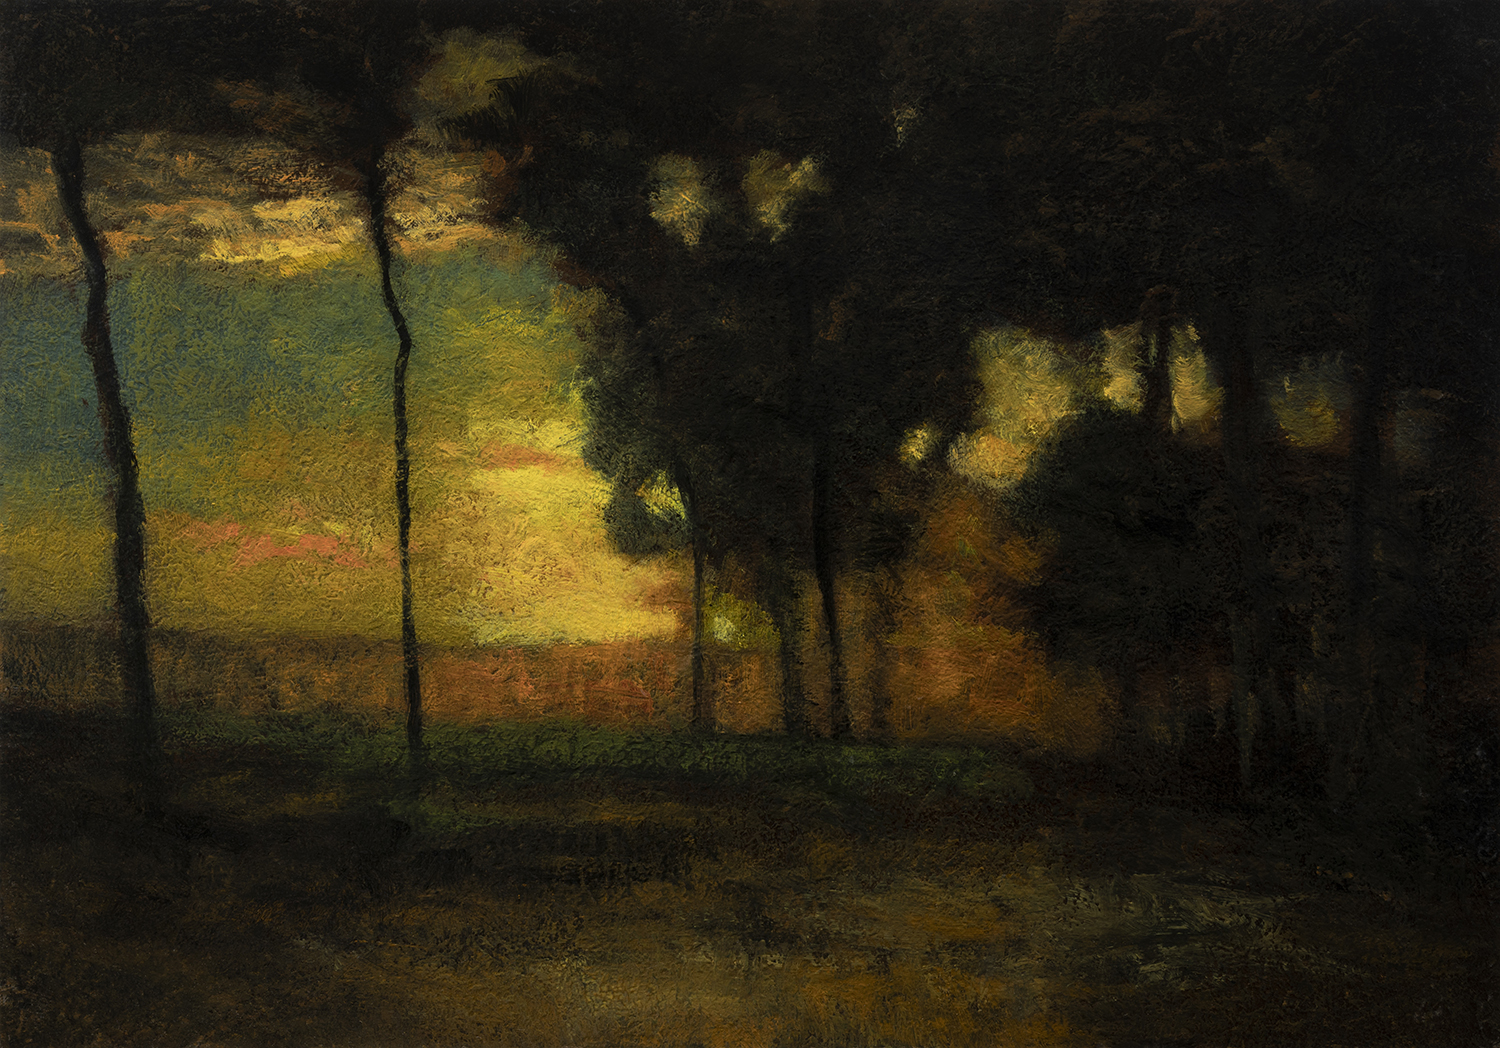 Study after George Inness Sunset in the Old Orchard by M Francis McCarthy - 7x10 Oil on Wood Panel